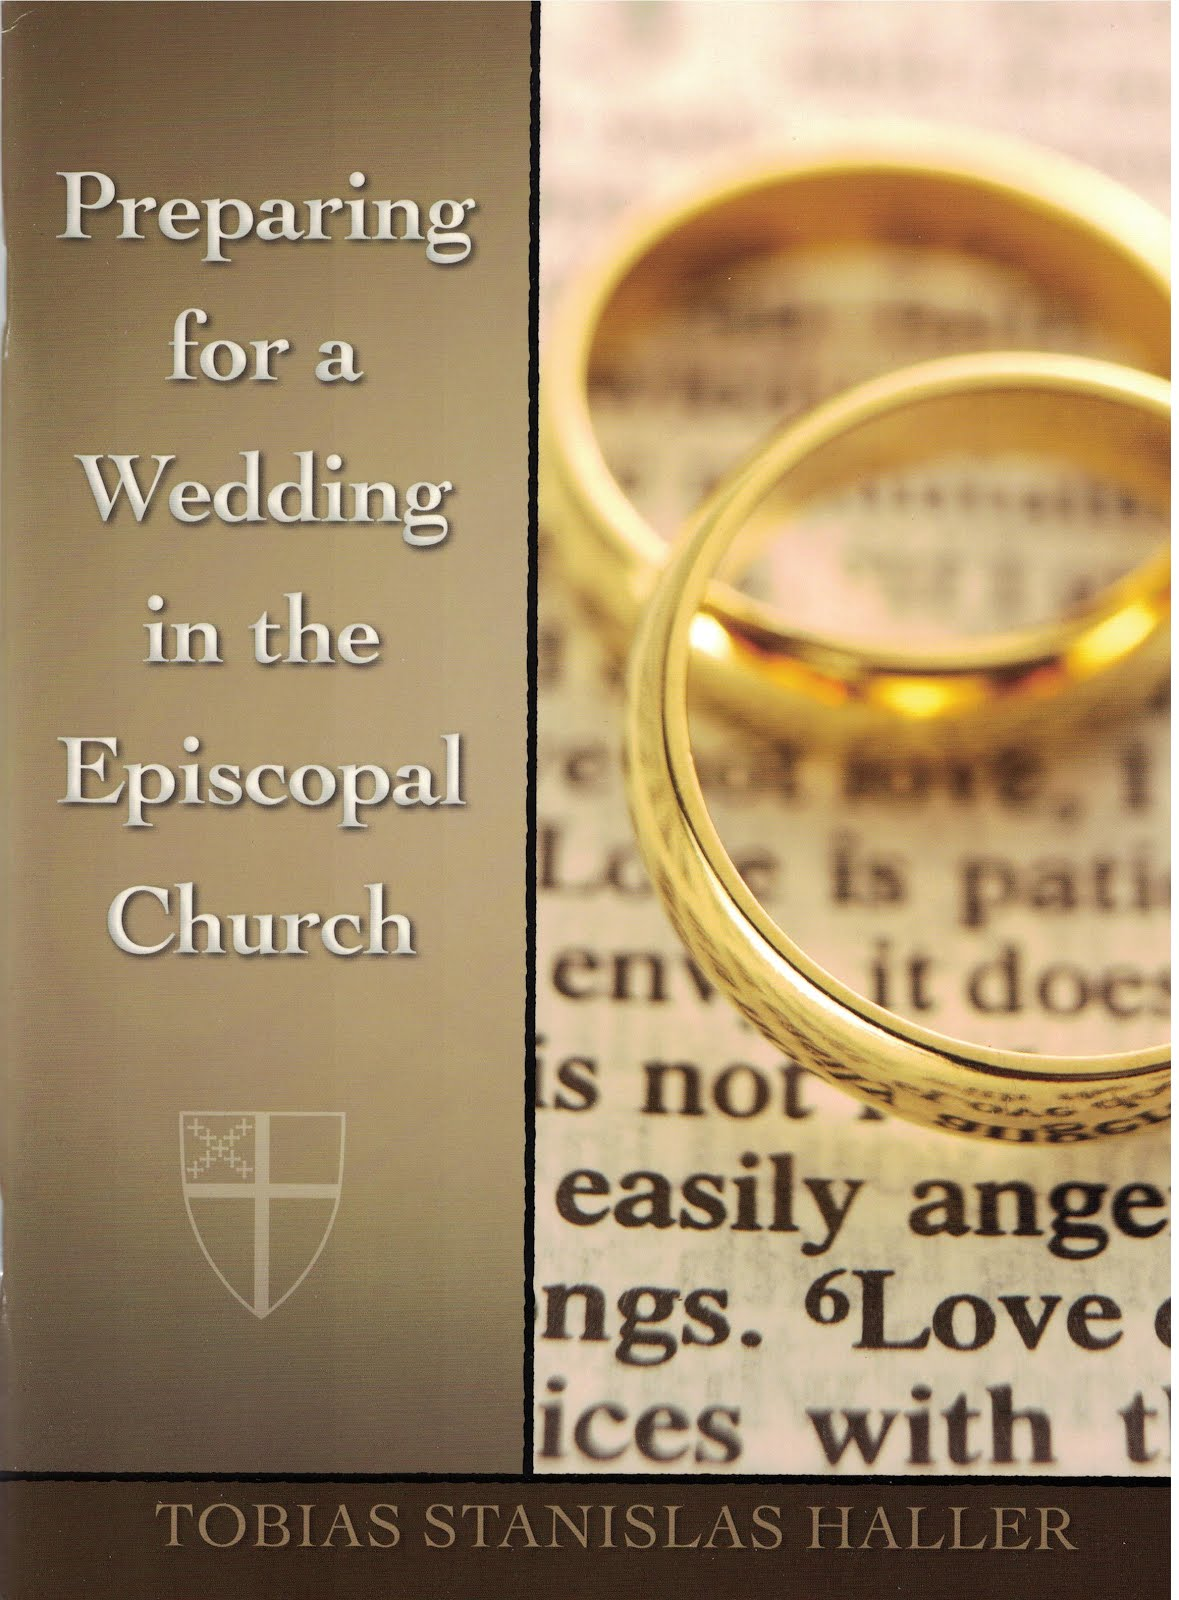 Helpful resource for clergy and couples